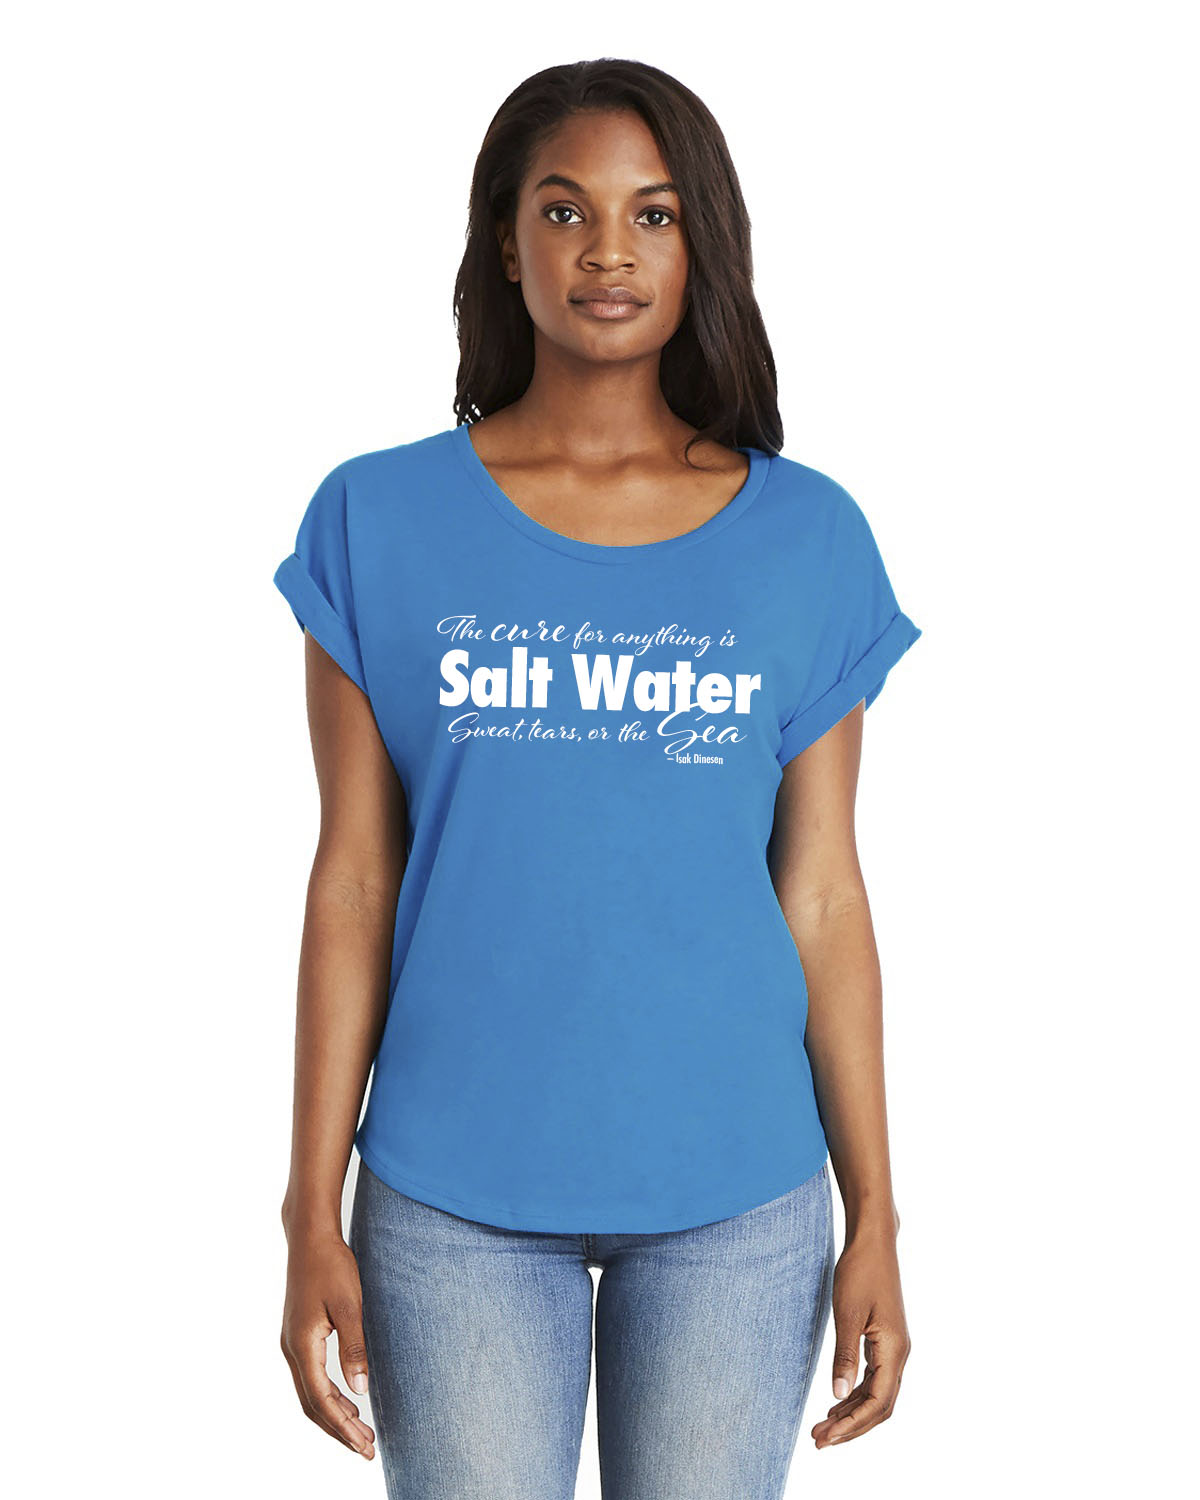 Women's Dolman Sleeve Salt Water QuoteT-shirt (Turquoise)